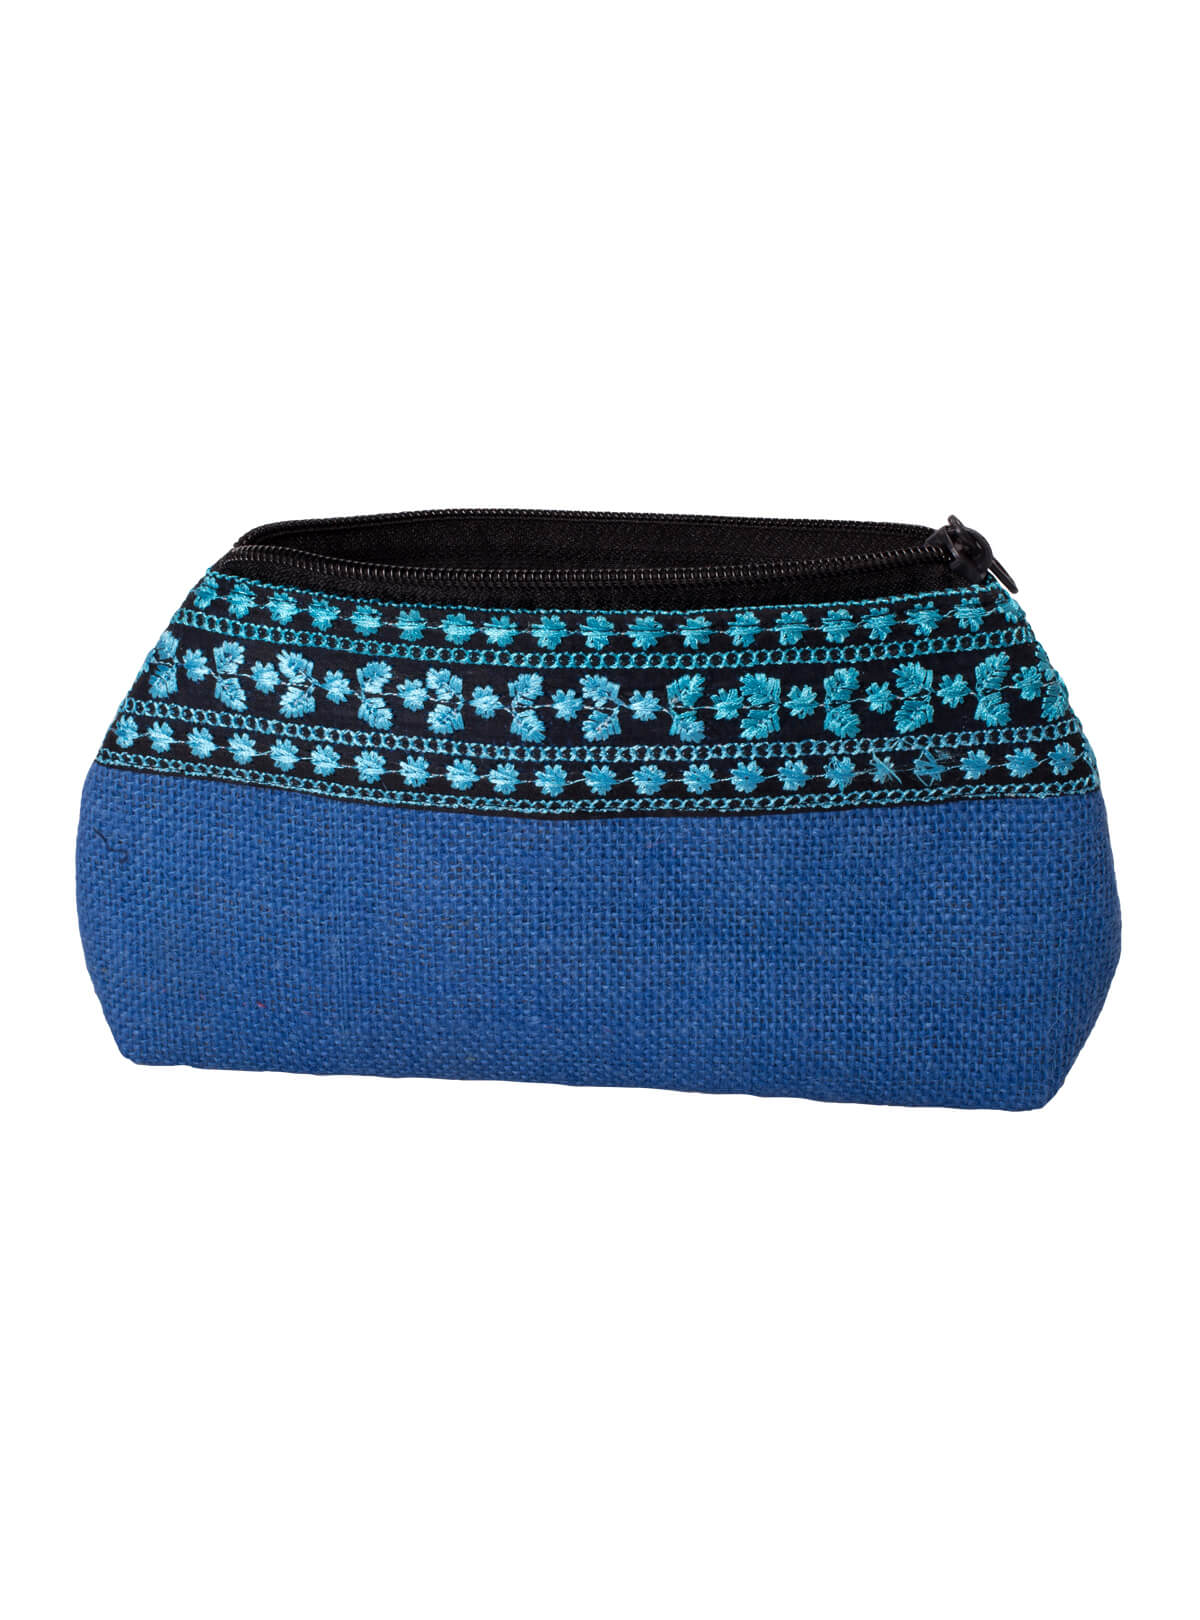 Blue Jute Ladies Purse